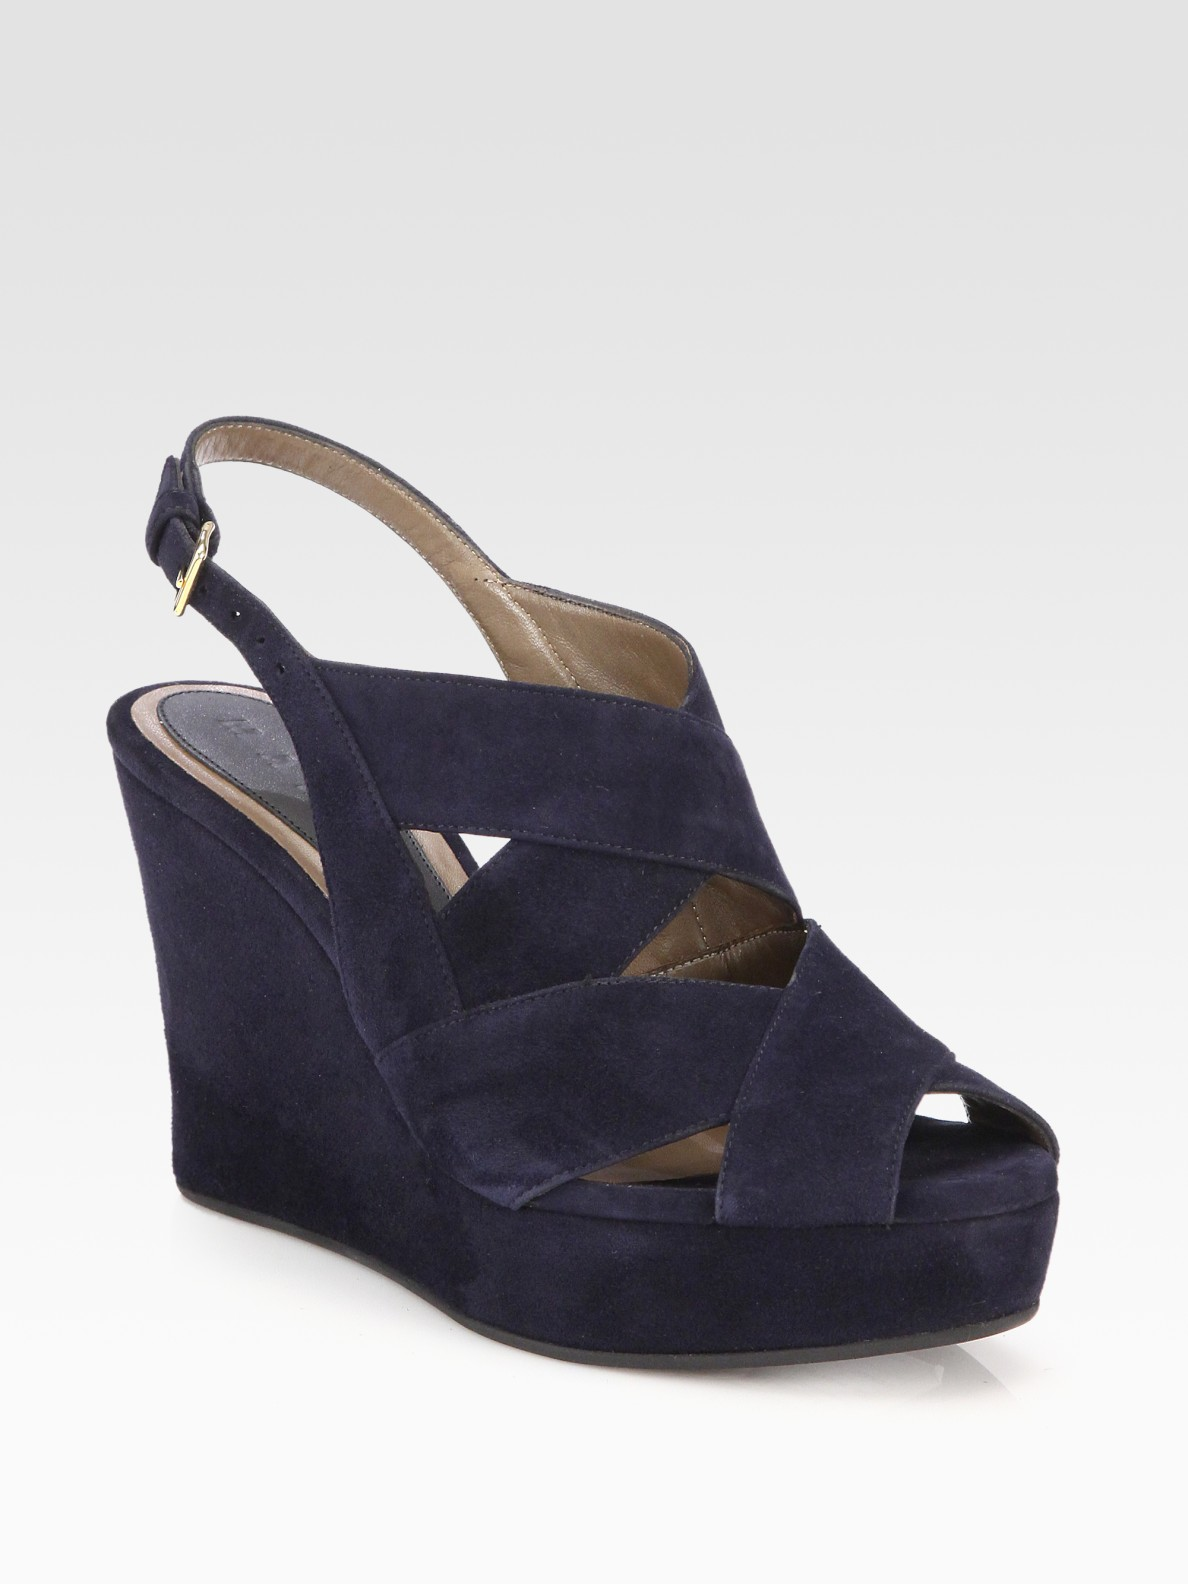 Marni Suede Banded Wedge Sandals in Blue